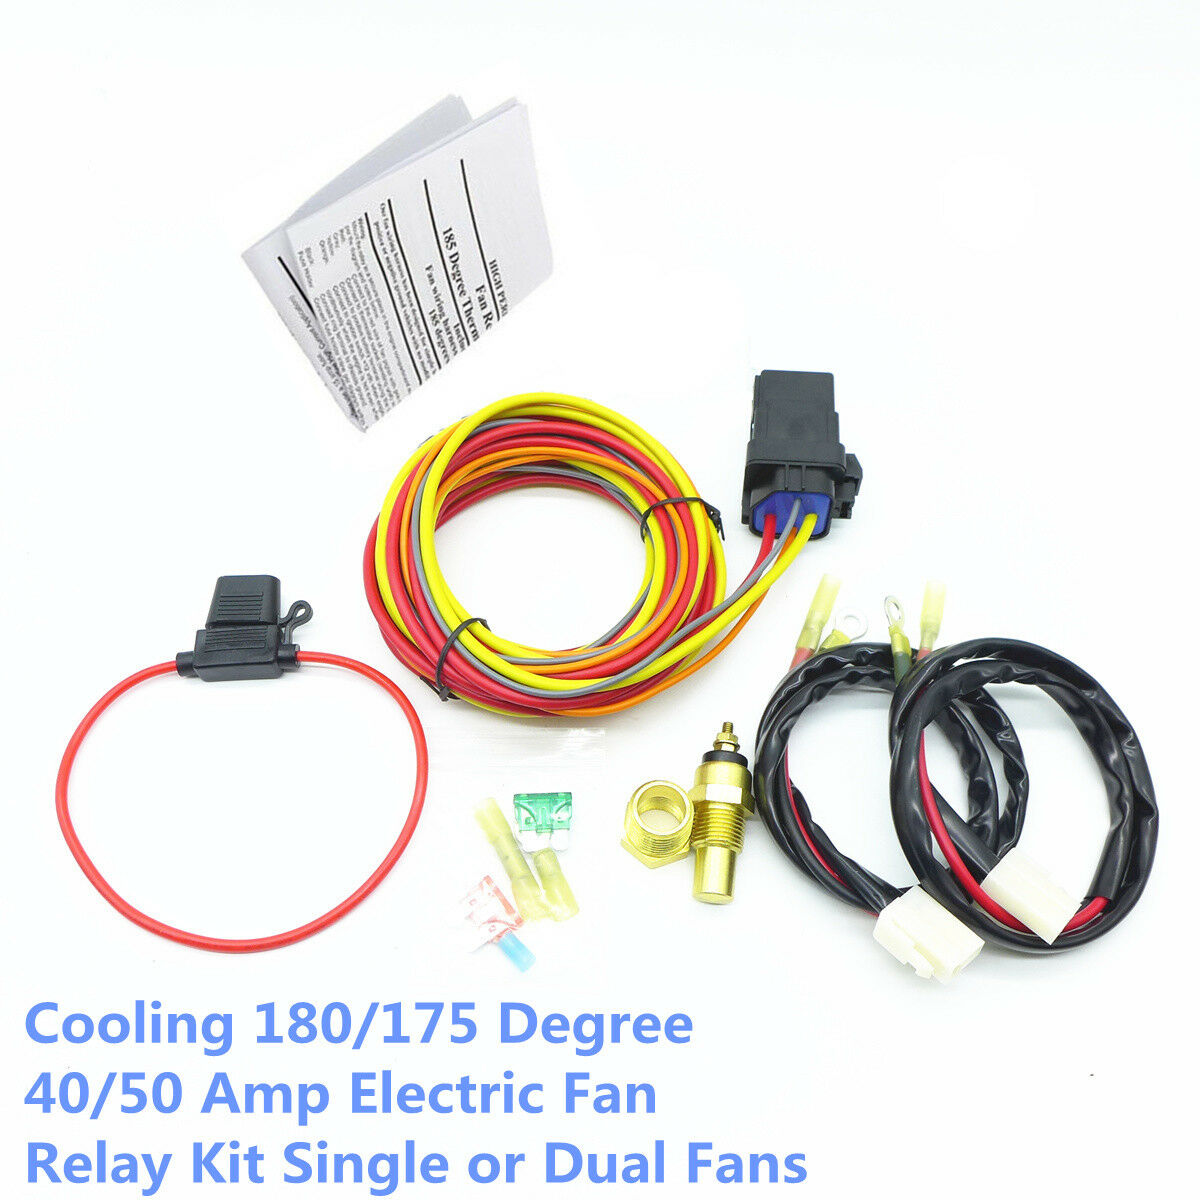 Cooling 180 175 Degree 40 50 Amp Electric Fan Relay Kit Single Or 2002 Dodge Caravan Wiring Dual 1 Of 8free Shipping See More